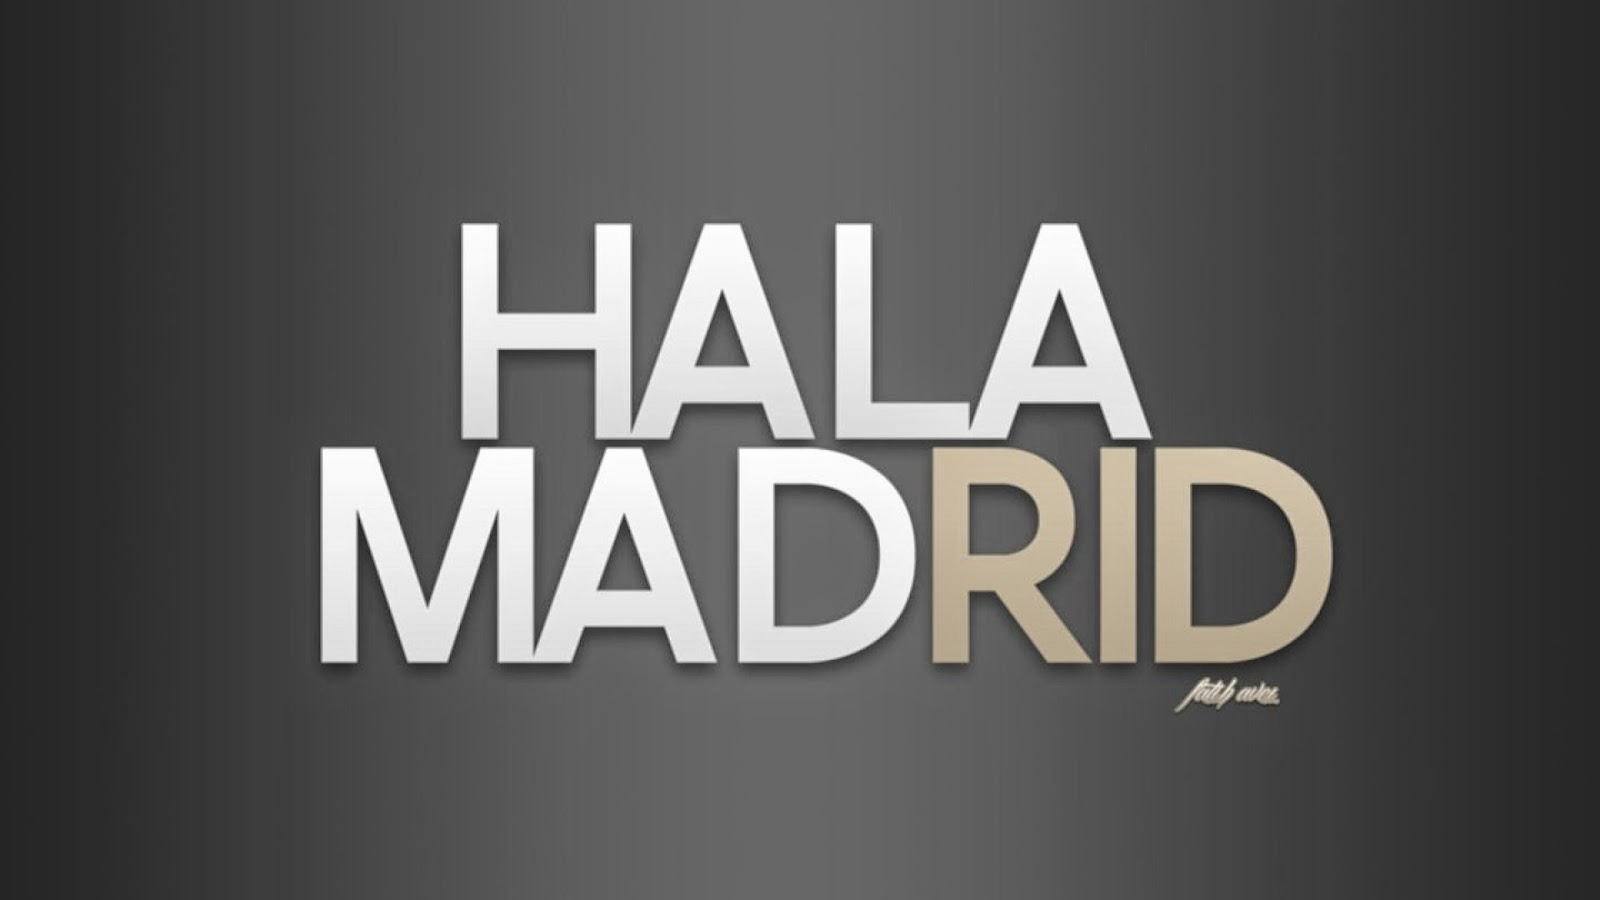 halla madrid